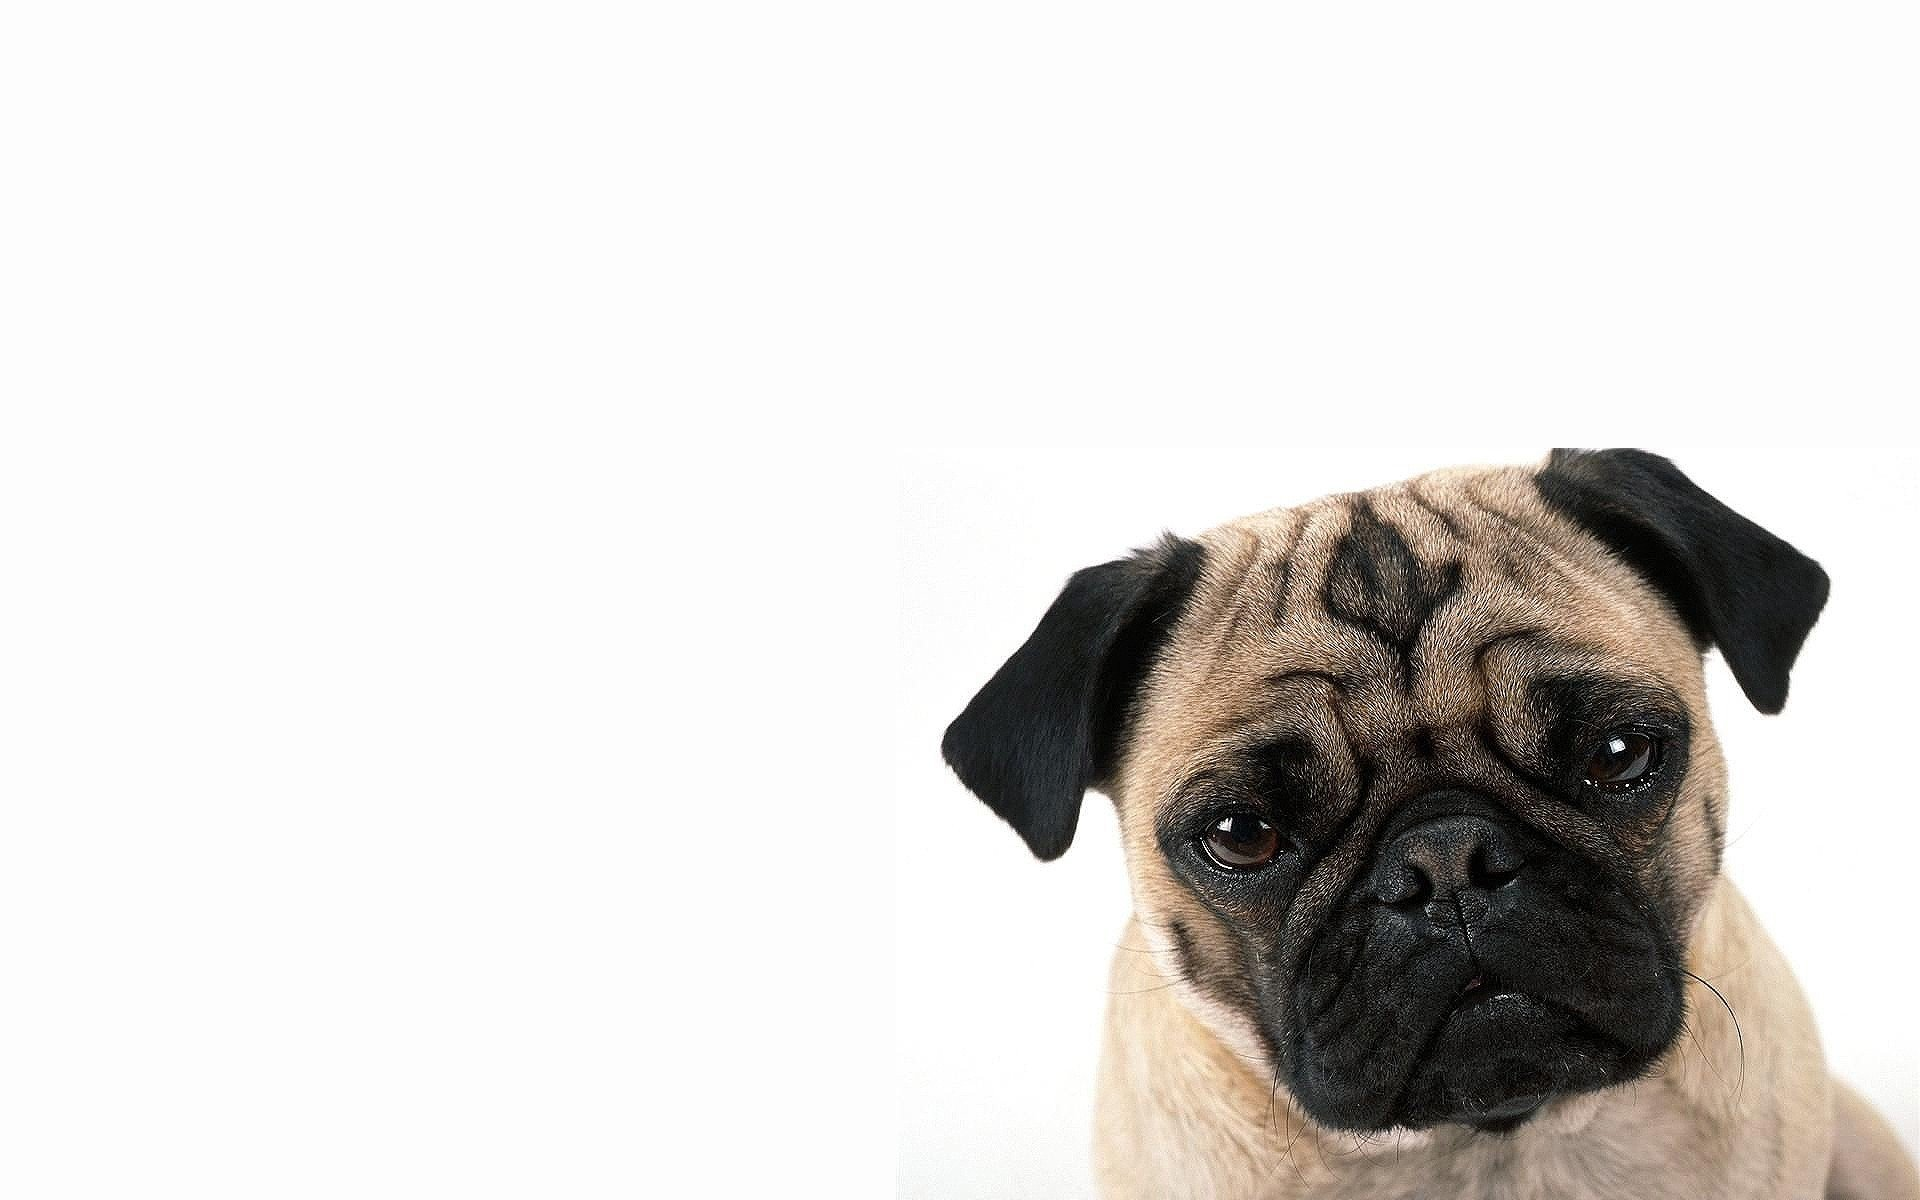 Pug Wallpaper 205 Wide Wallpaper   DogBreedsWallpaperscom 1920x1200